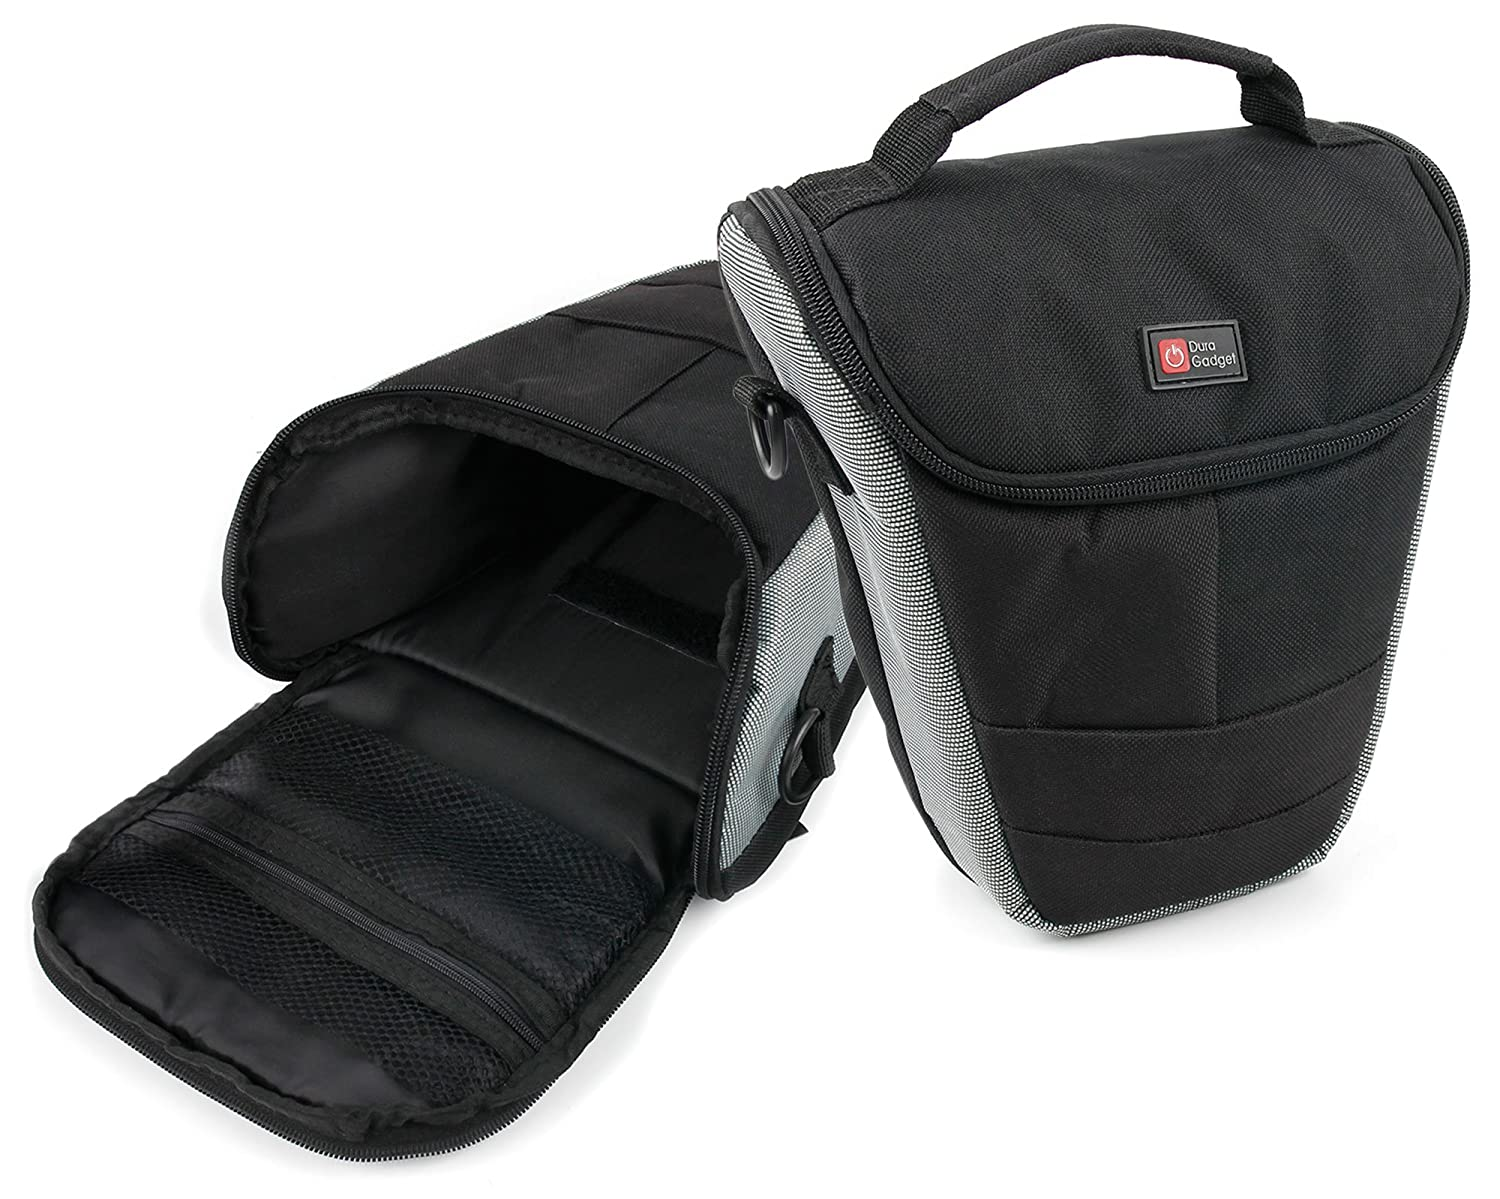 DURAGADGET Hardwearing top-loader Protective Carry Case Bag for the Pentax 645 Z & Rollei 10842 PowerflexブリッジKamera 260フルHD B00M885MVY